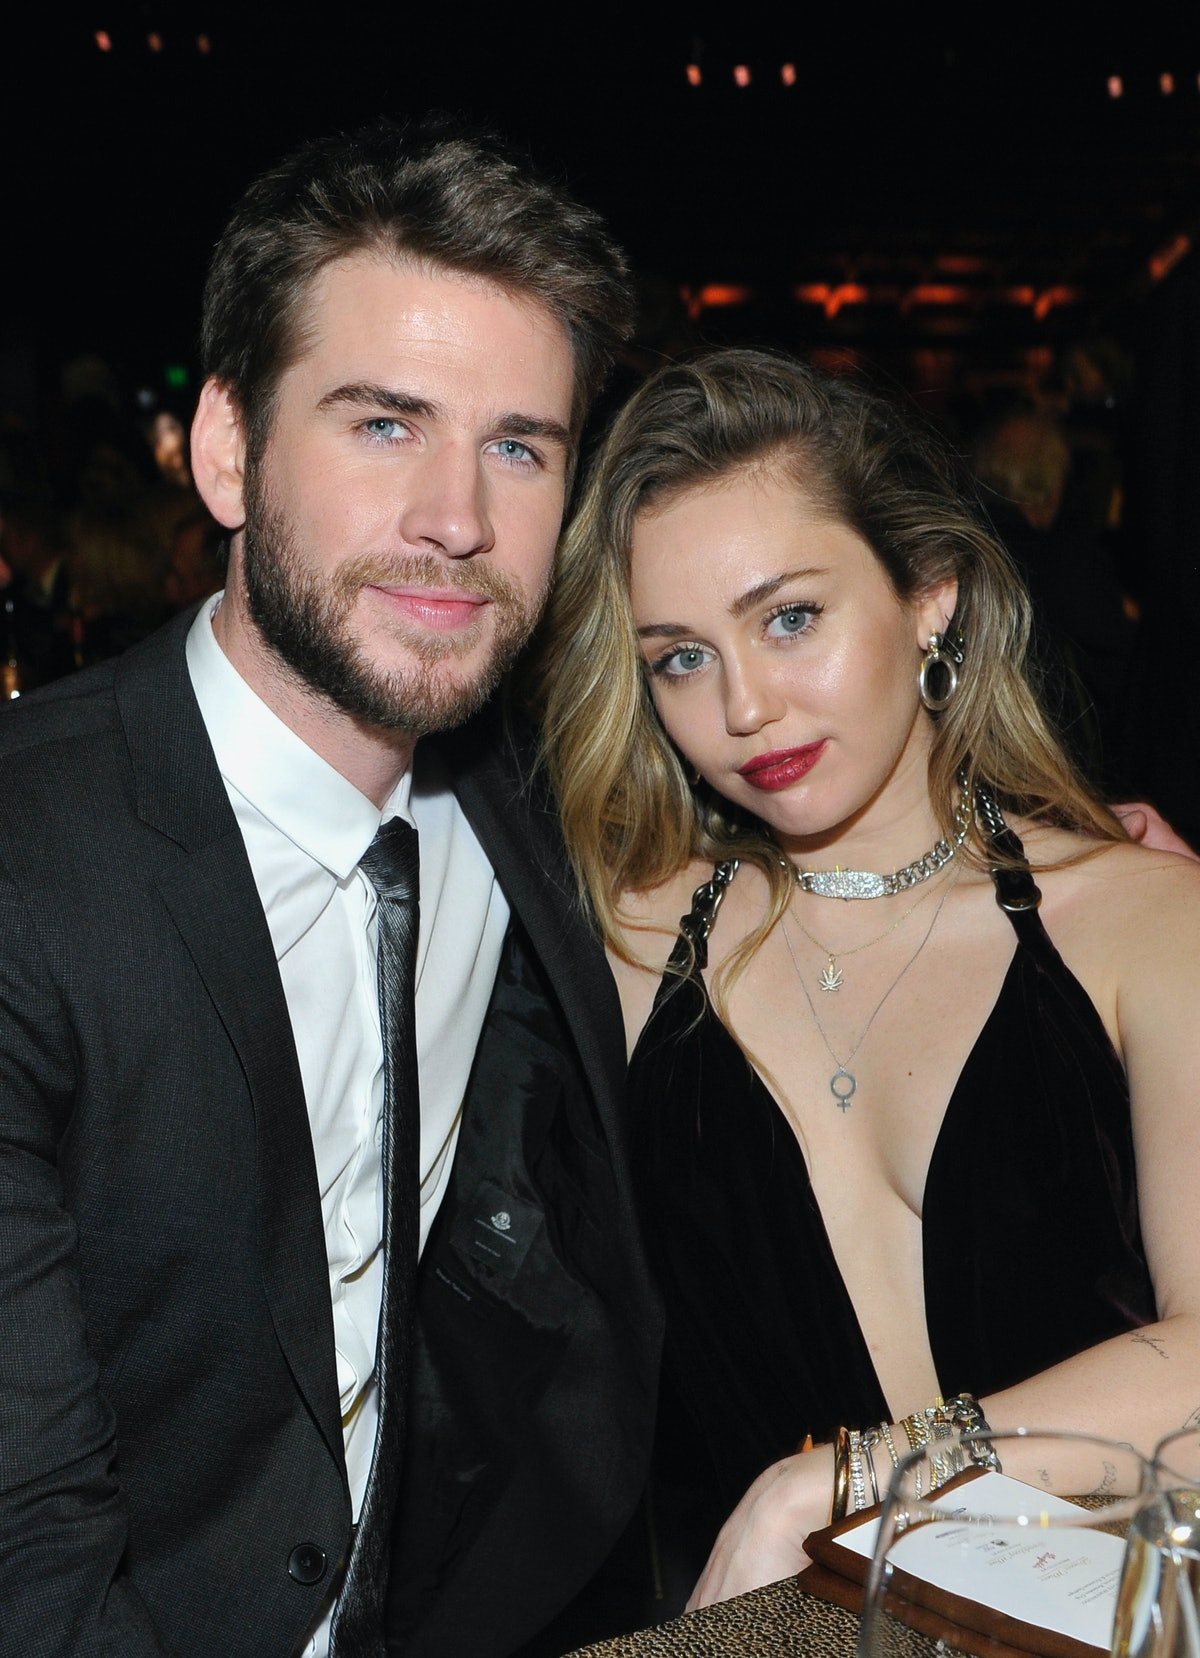 Miley Cyrus & Liam Hemsworth's Wedding Included Puppies & So Much Vegan Food — PHOTOS